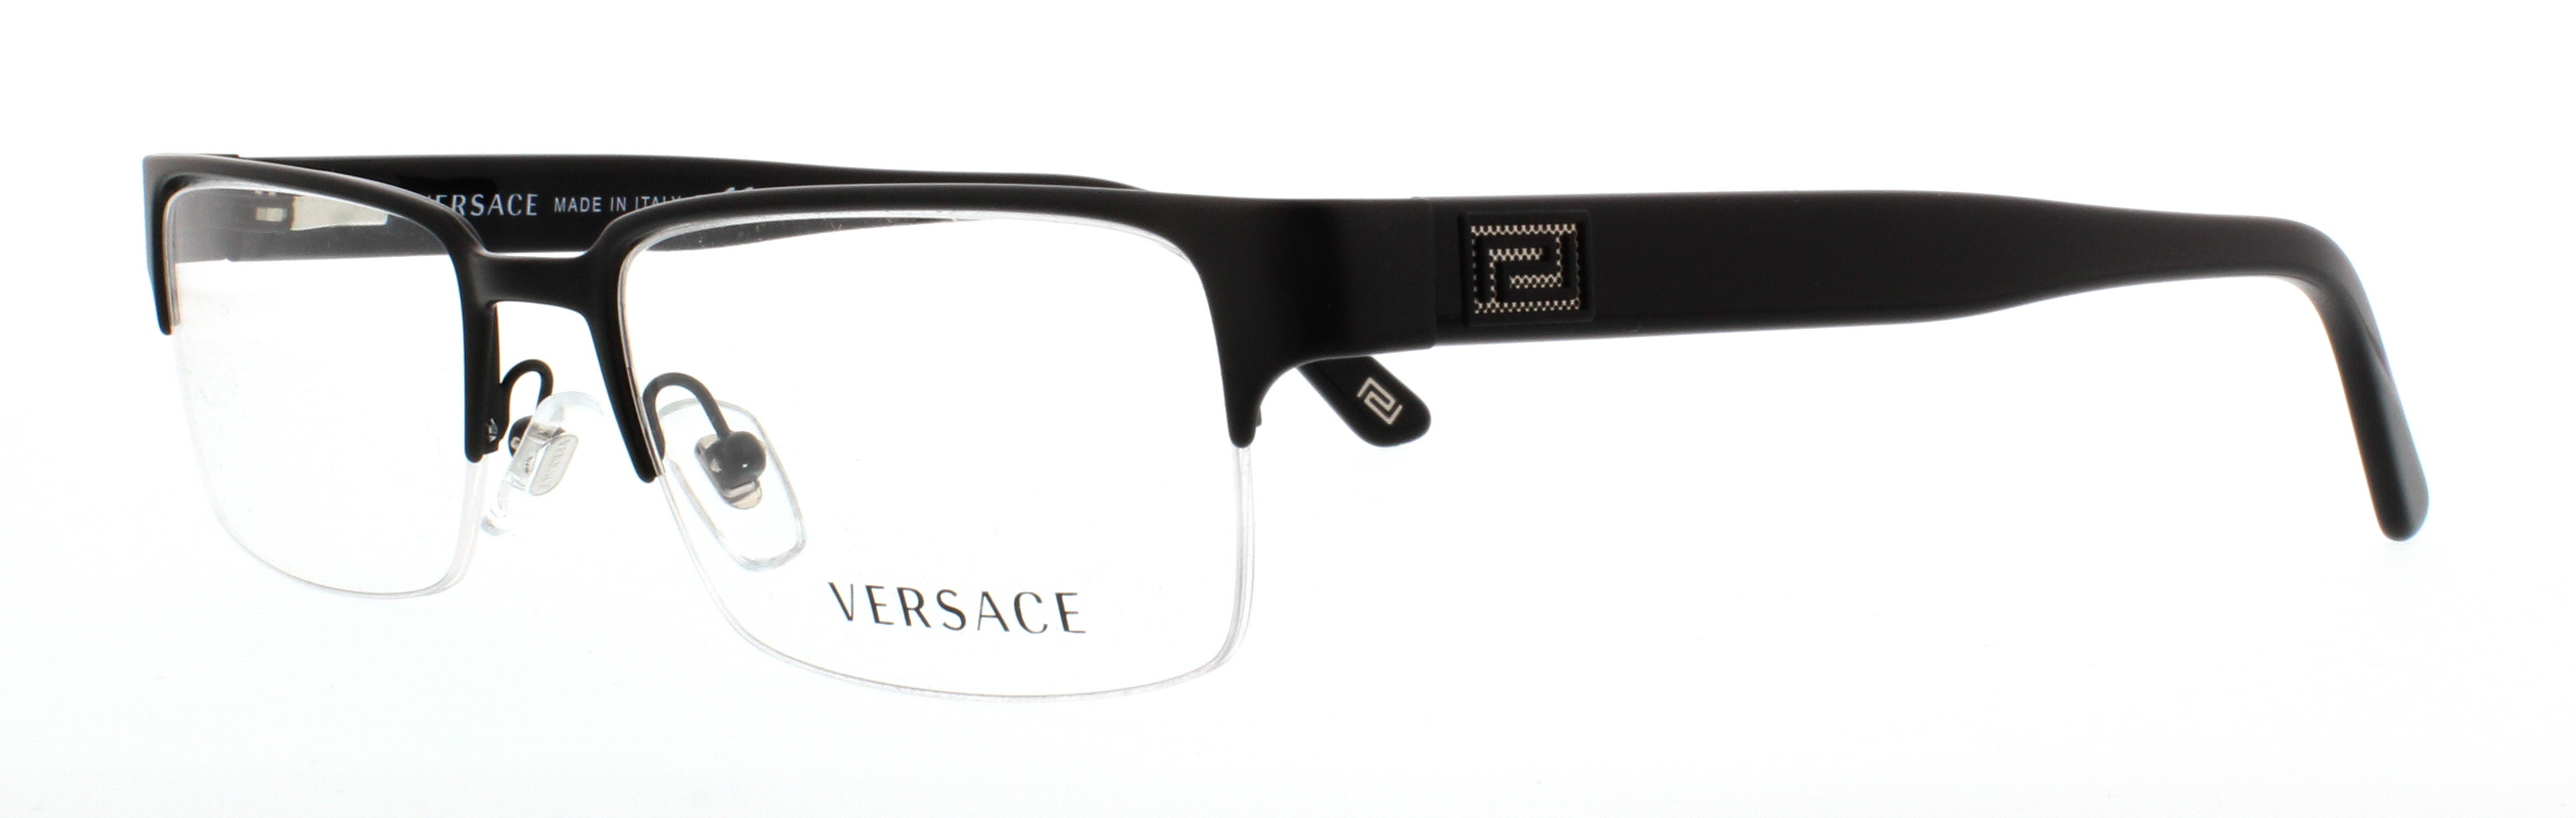 Picture of Versace VE1184